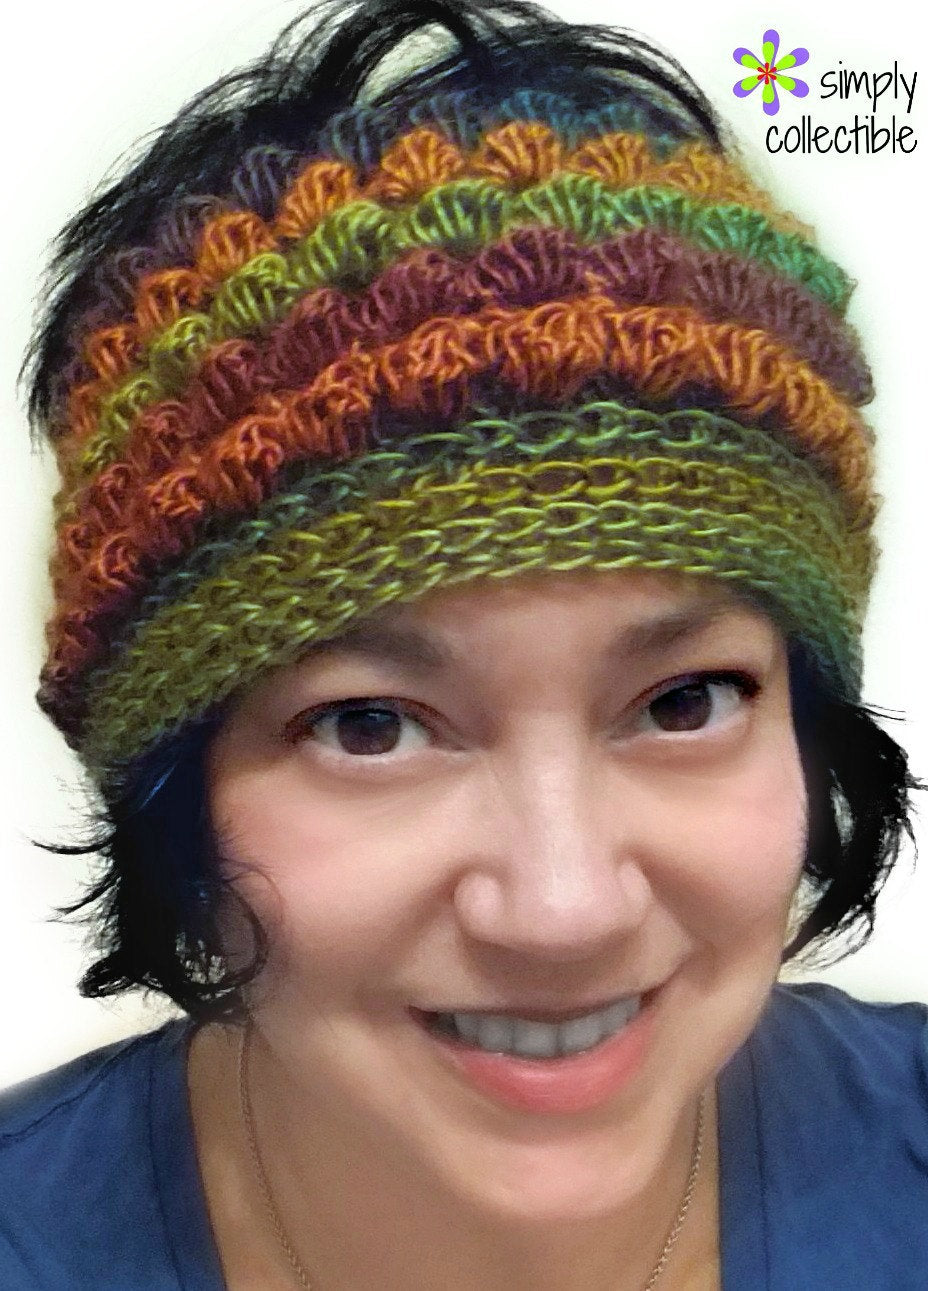 Bibbity Bobbity Short n Sassy 3-in-1 Messy Bun Hat Crochet Pattern